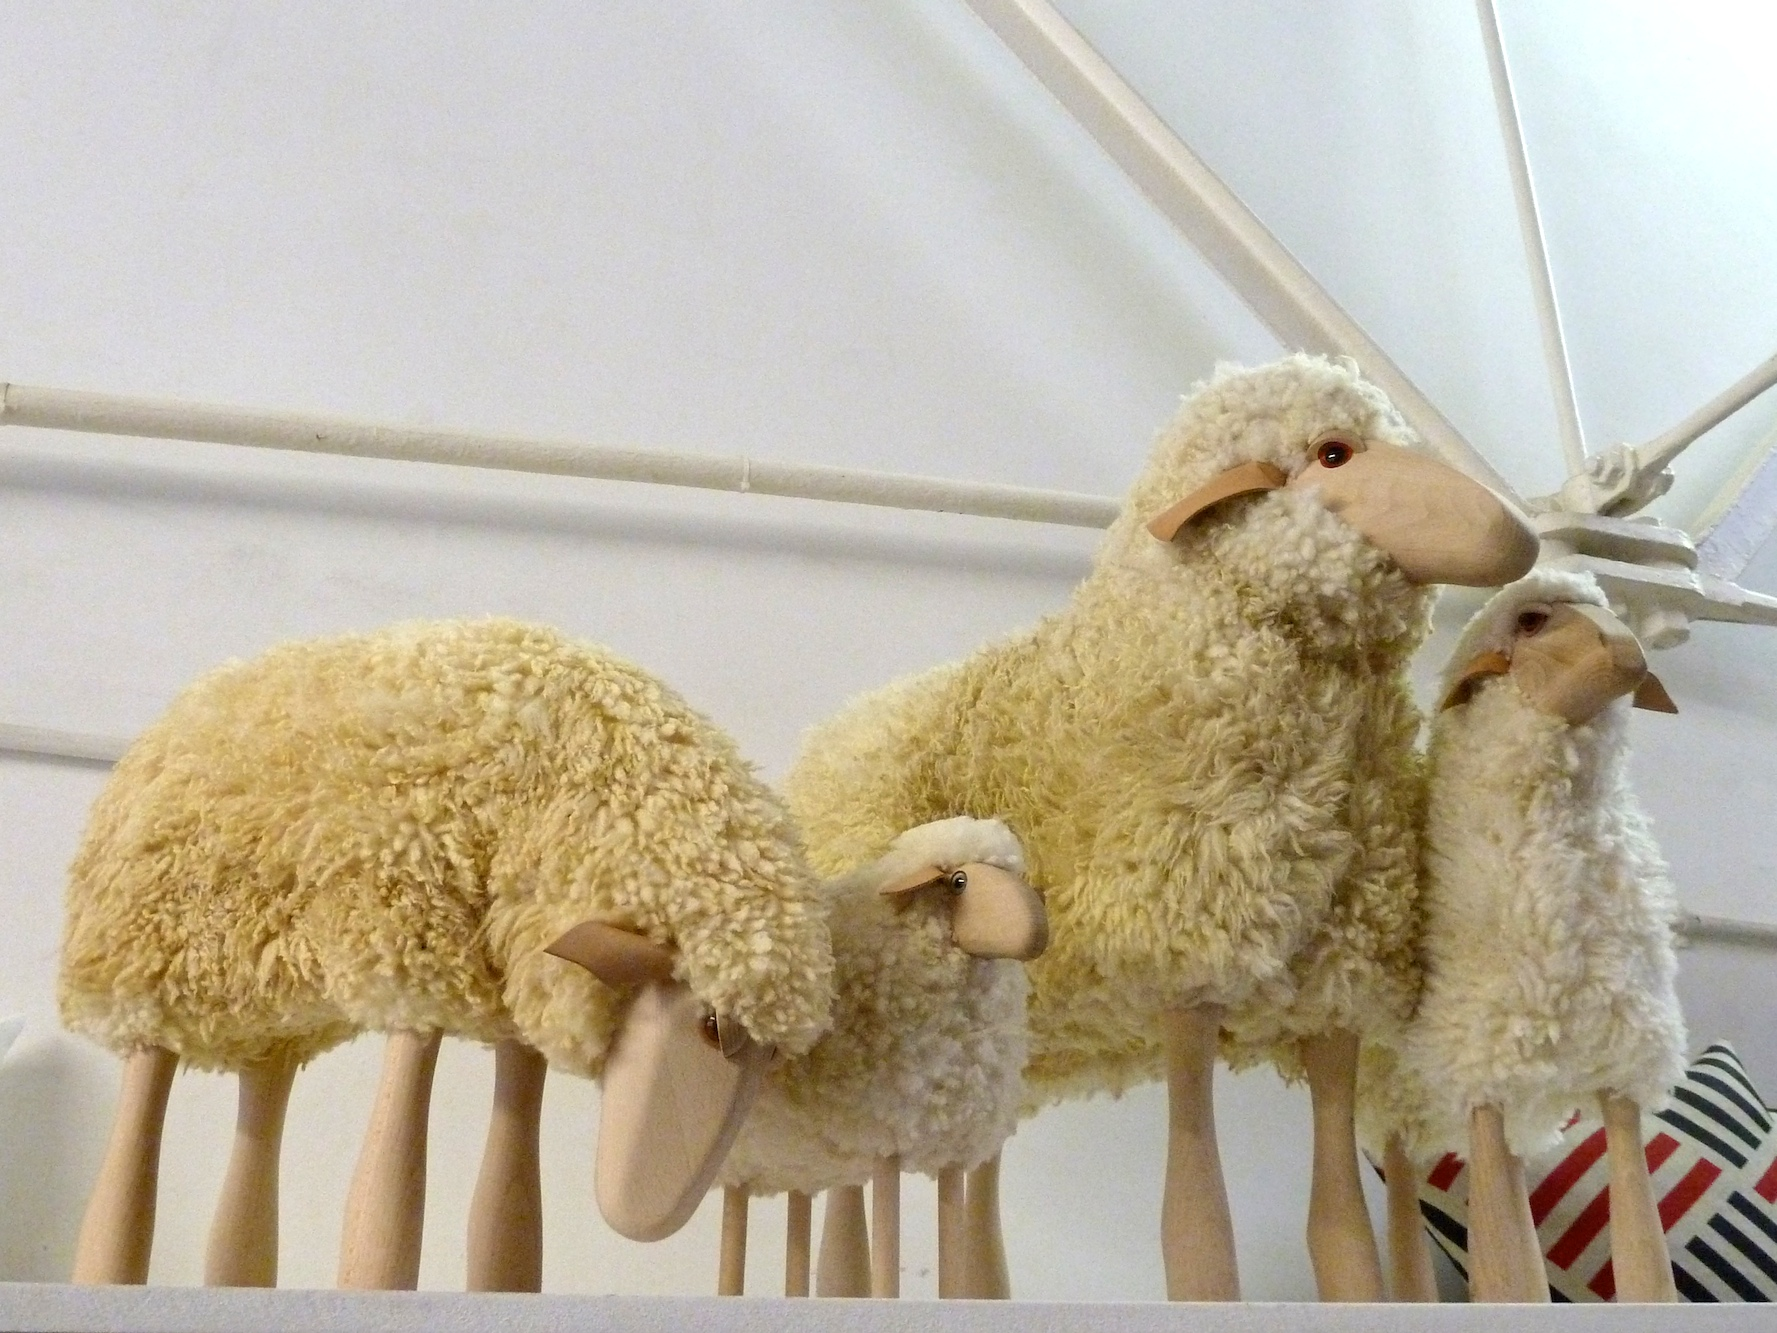 Wonderful sit on woolly sheep selection by Hanns-Peter Krafft at Theo online store